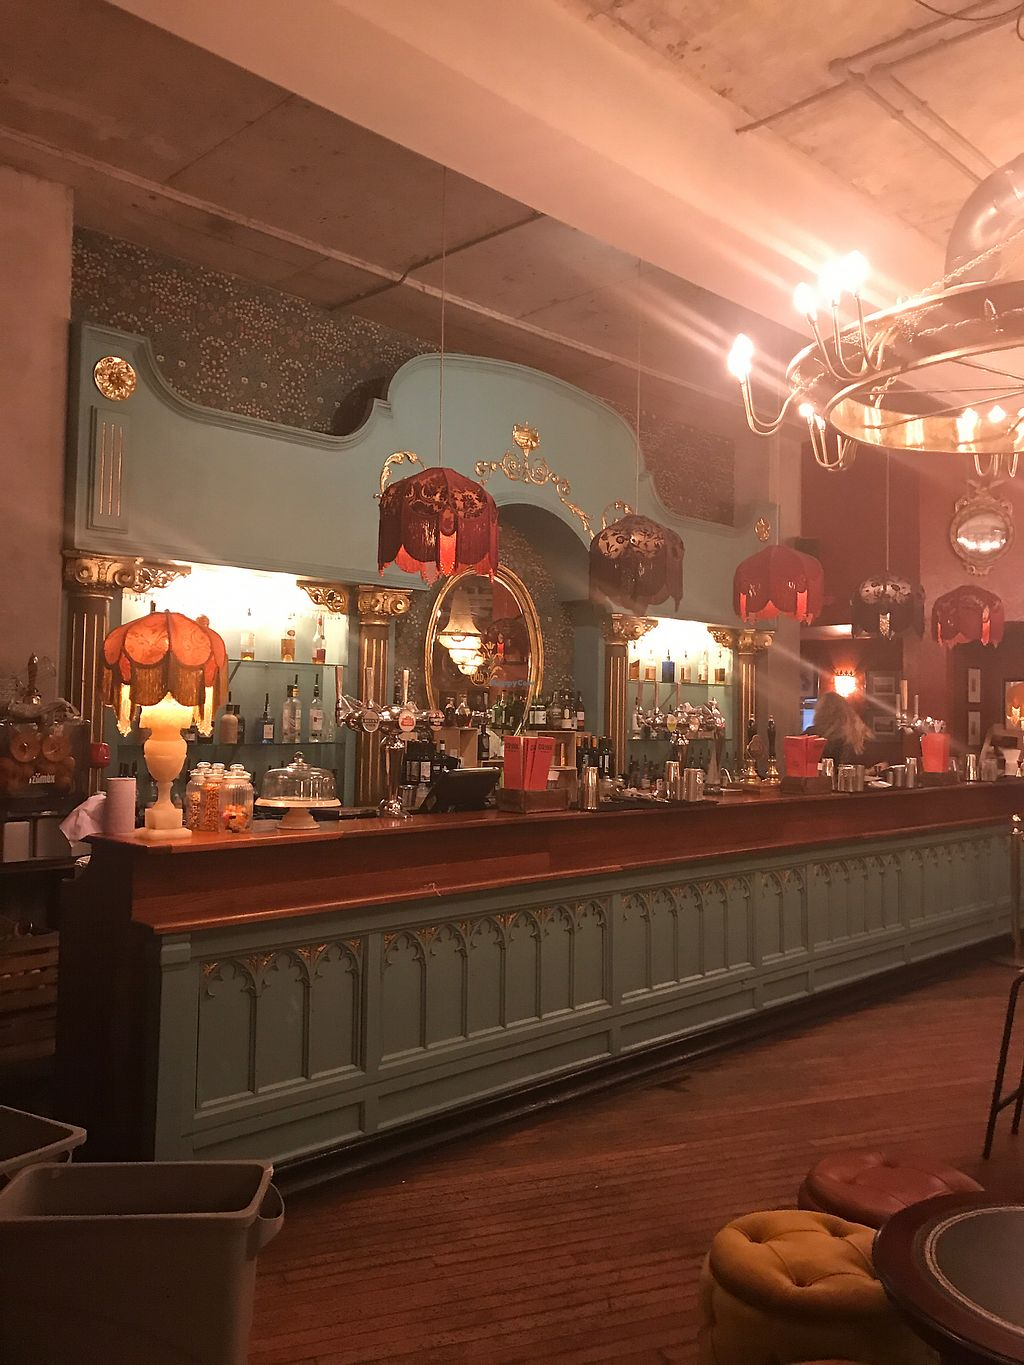 """Photo of The Cosy Club  by <a href=""""/members/profile/MelbourneMegan"""">MelbourneMegan</a> <br/>The Bar <br/> September 8, 2017  - <a href='/contact/abuse/image/79966/302119'>Report</a>"""